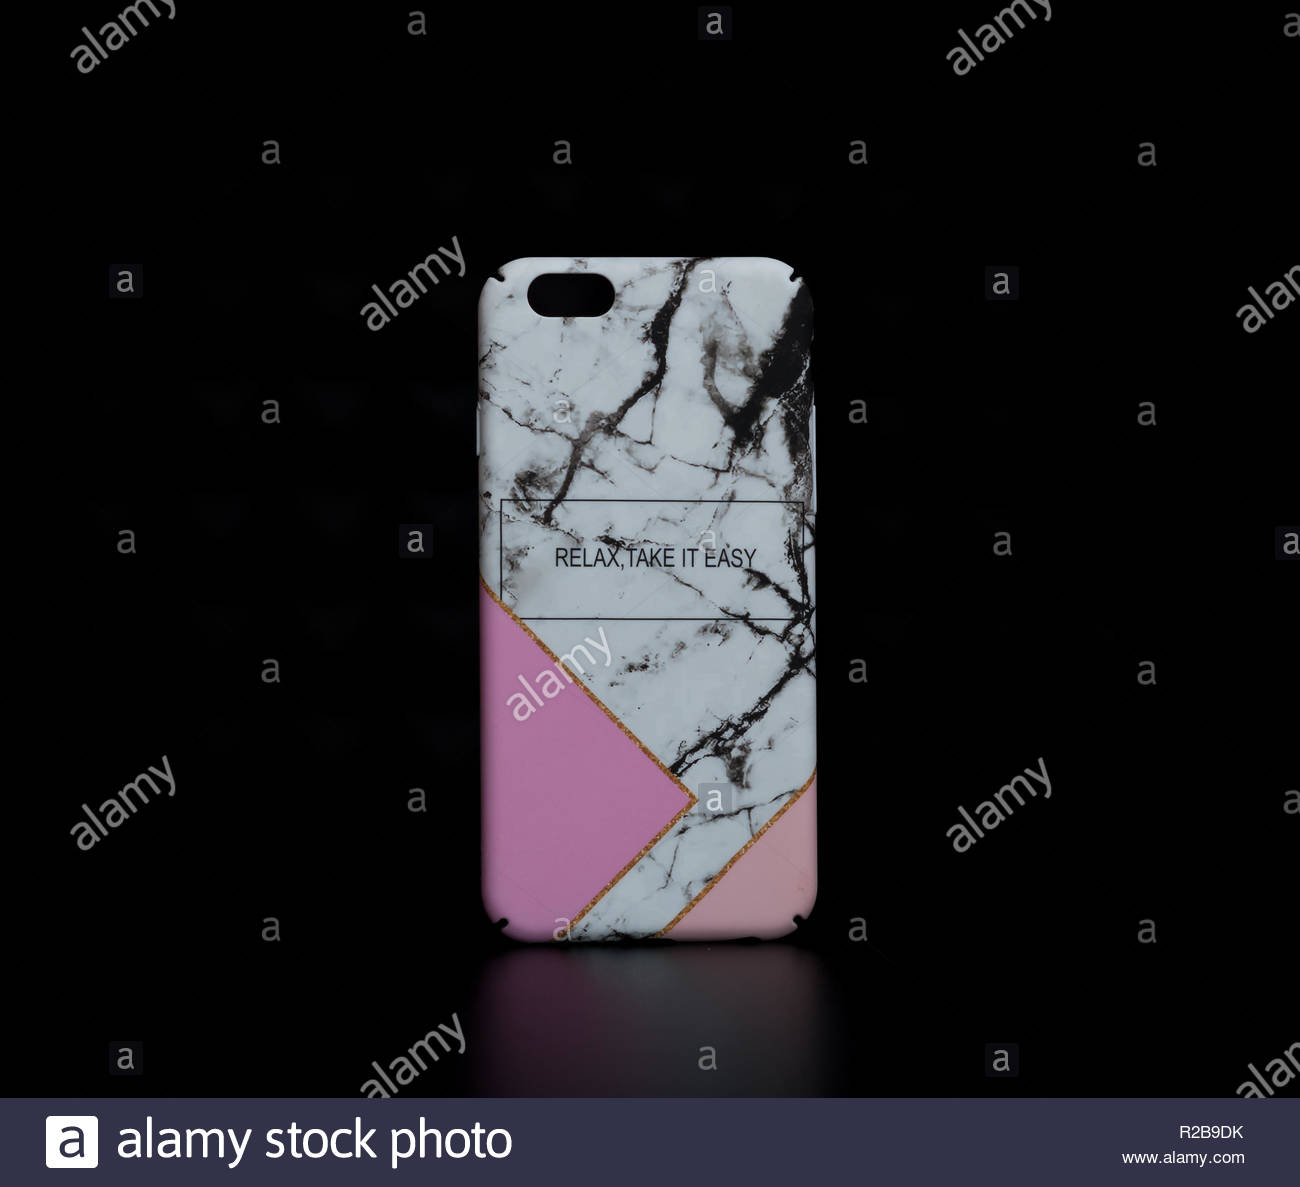 Marble stone design iphone x iphone xs iphone 7 iphone 8 phone cases - Stock Image